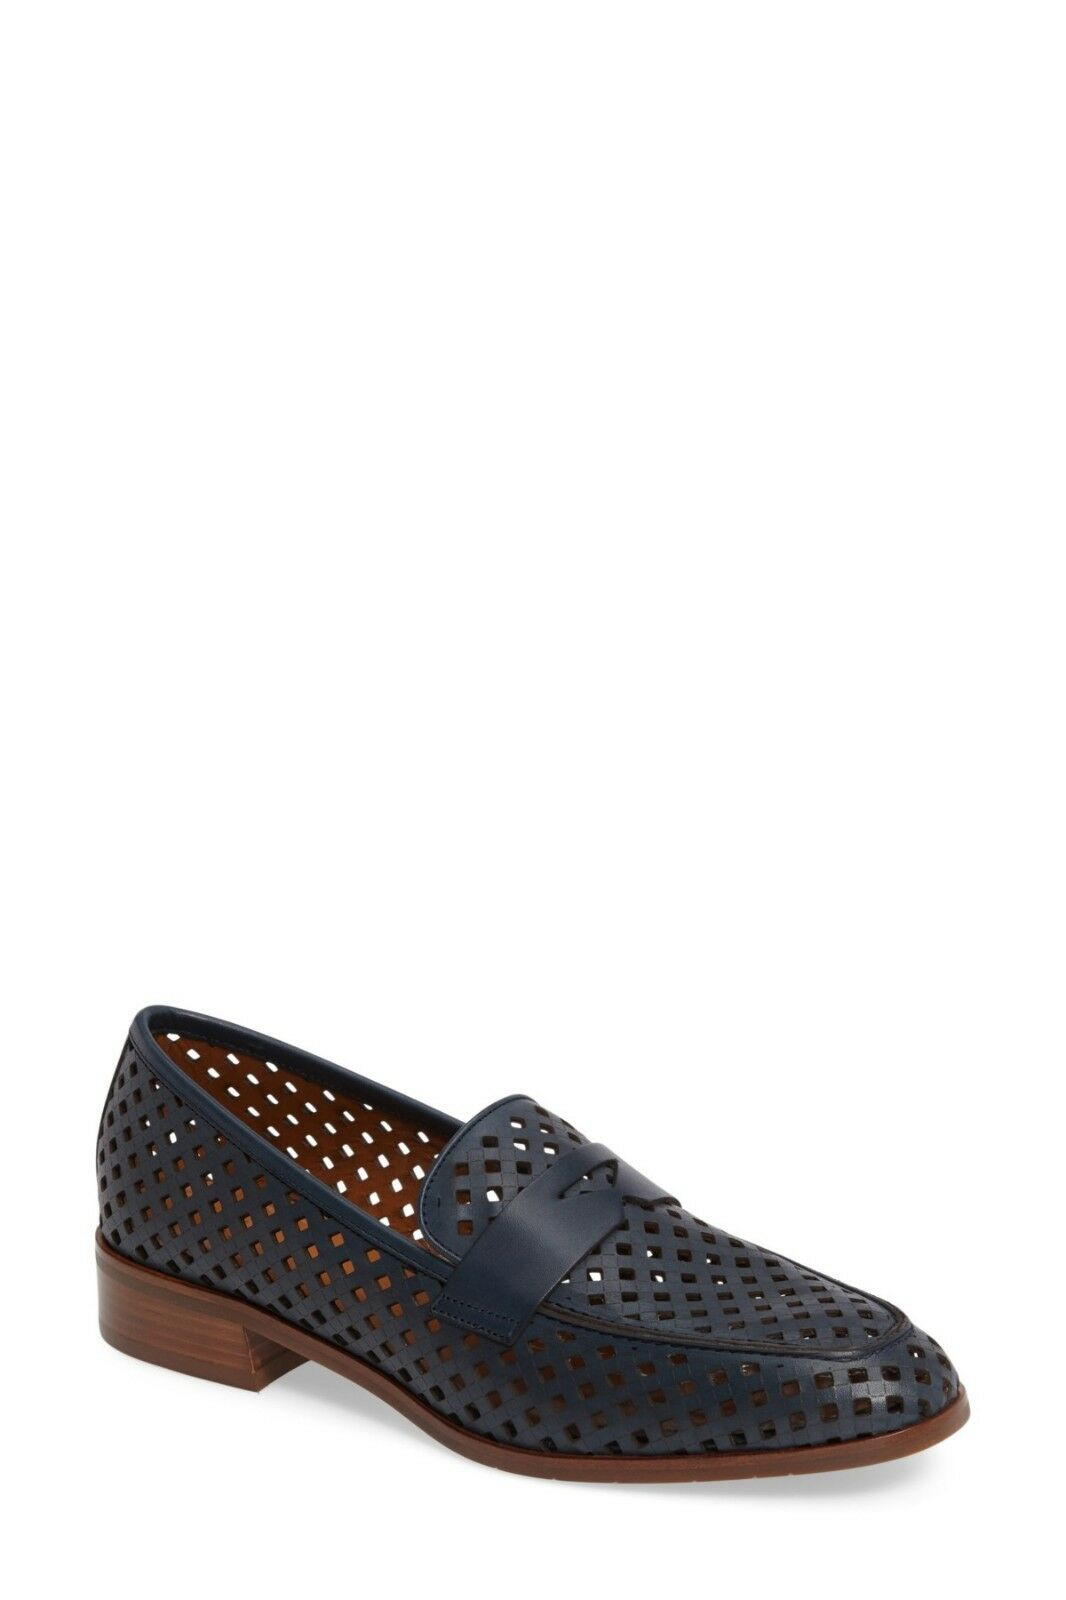 Aquatalia Sheryl Perforated shoes Navy bluee Sz 7 Loafer  New